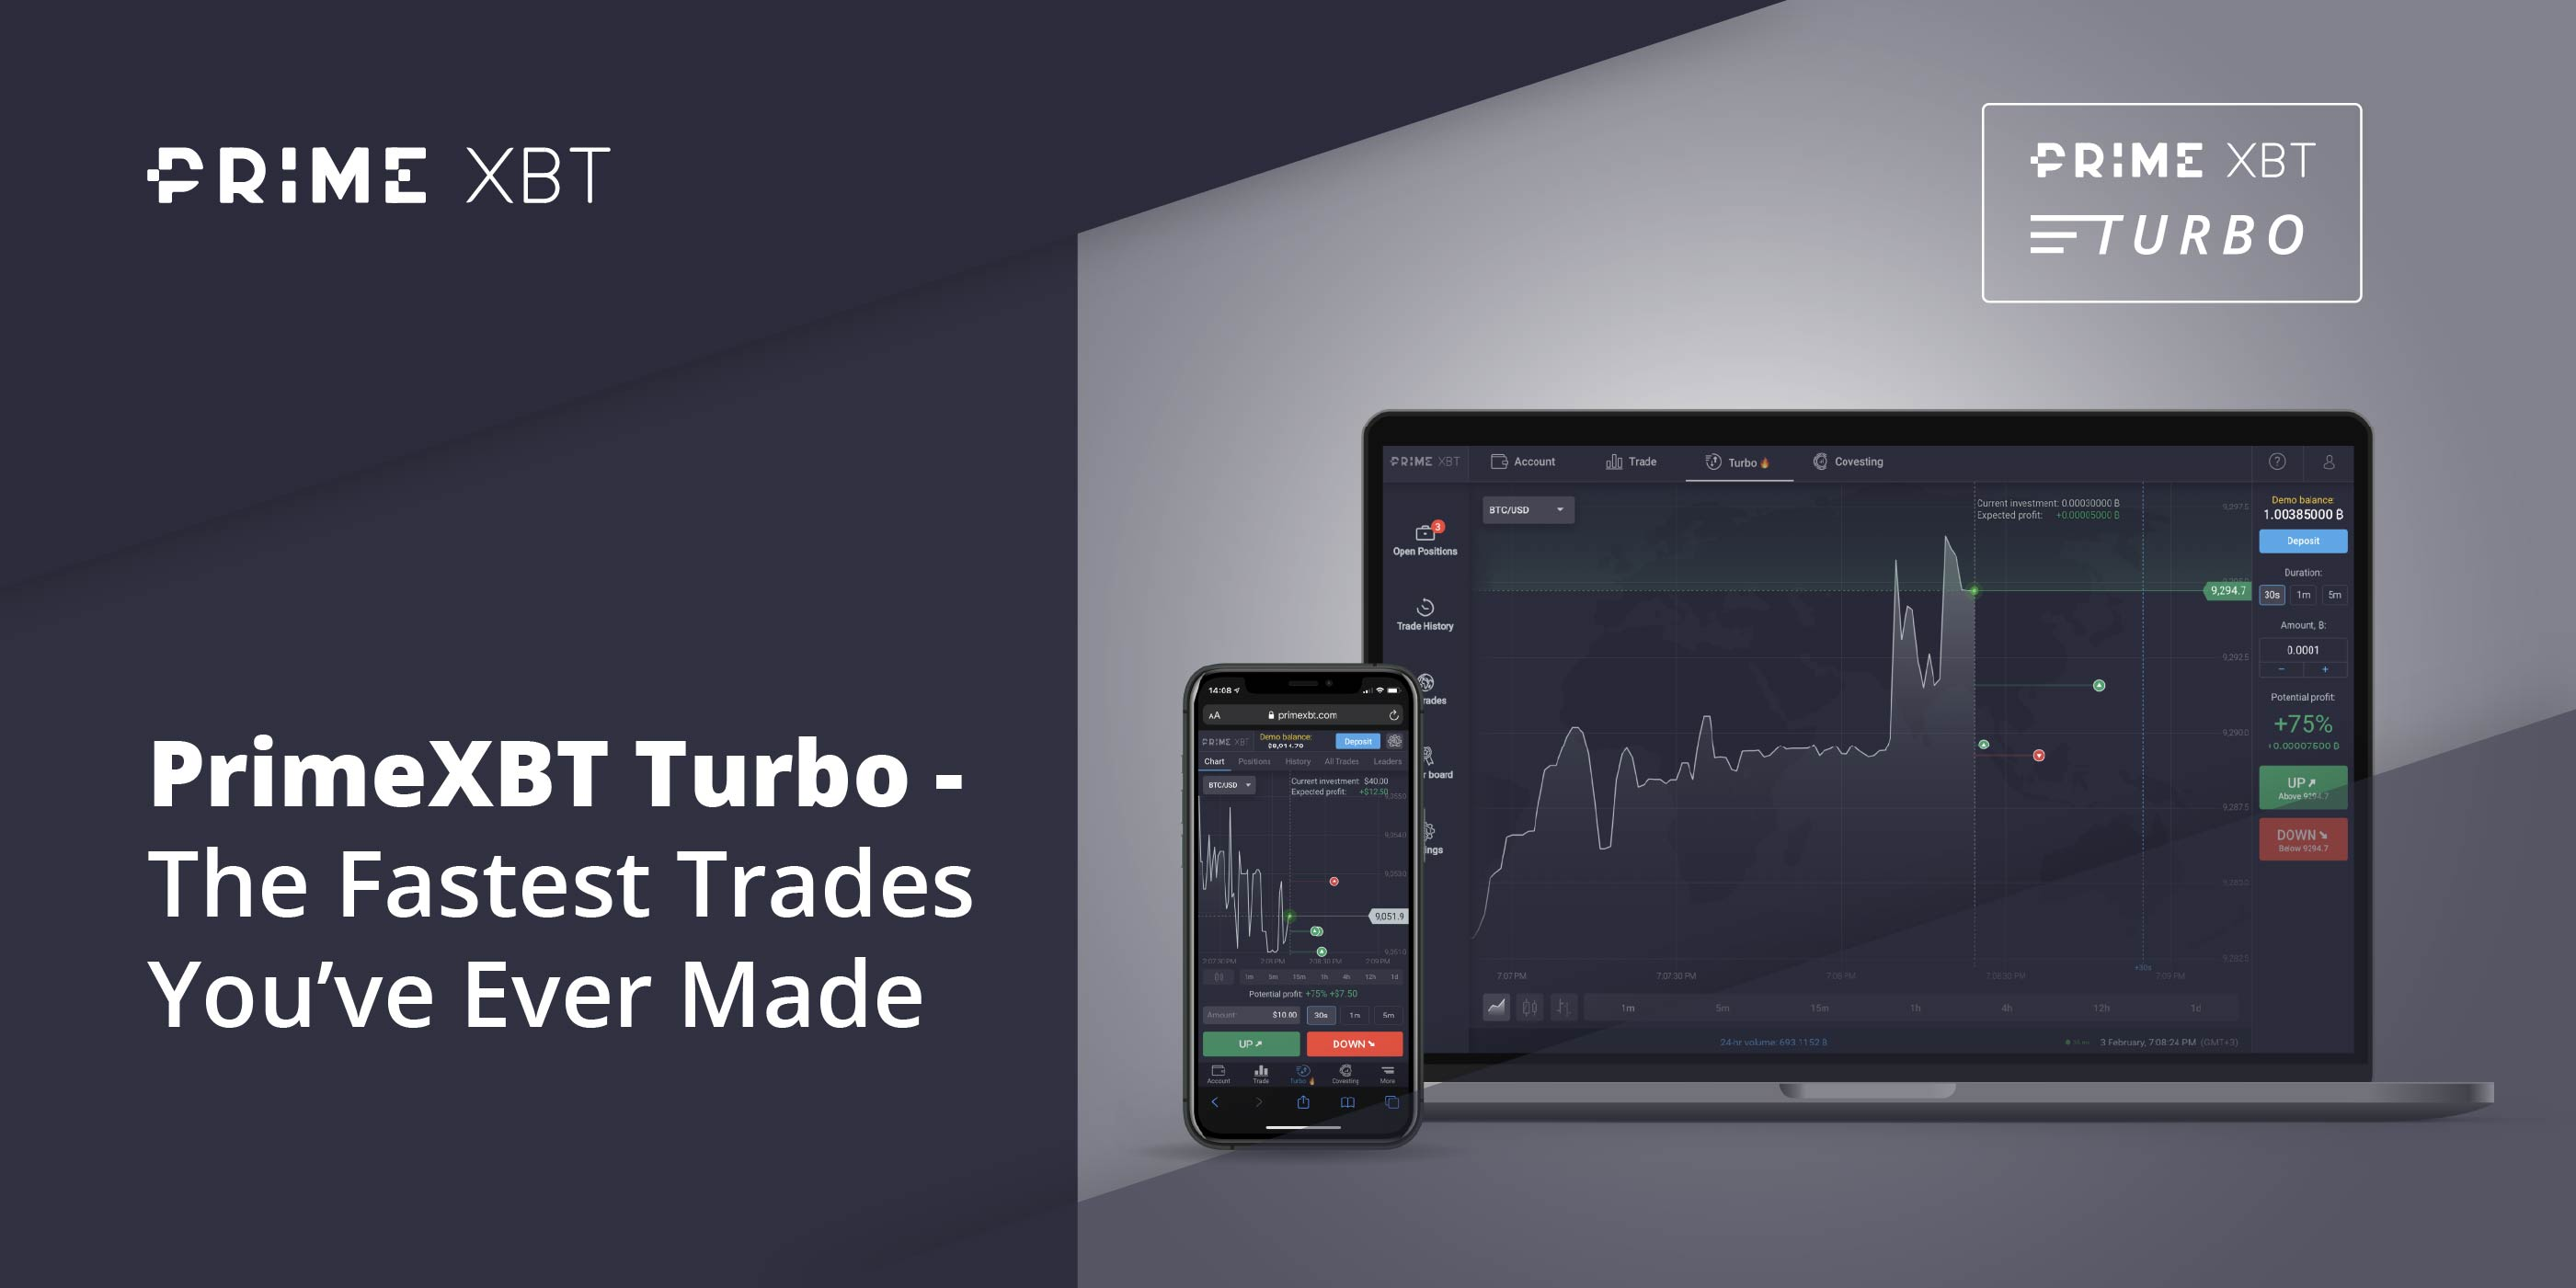 04.02.20 - PrimeXBT Announces Launch of PrimeXBT Turbo Platform